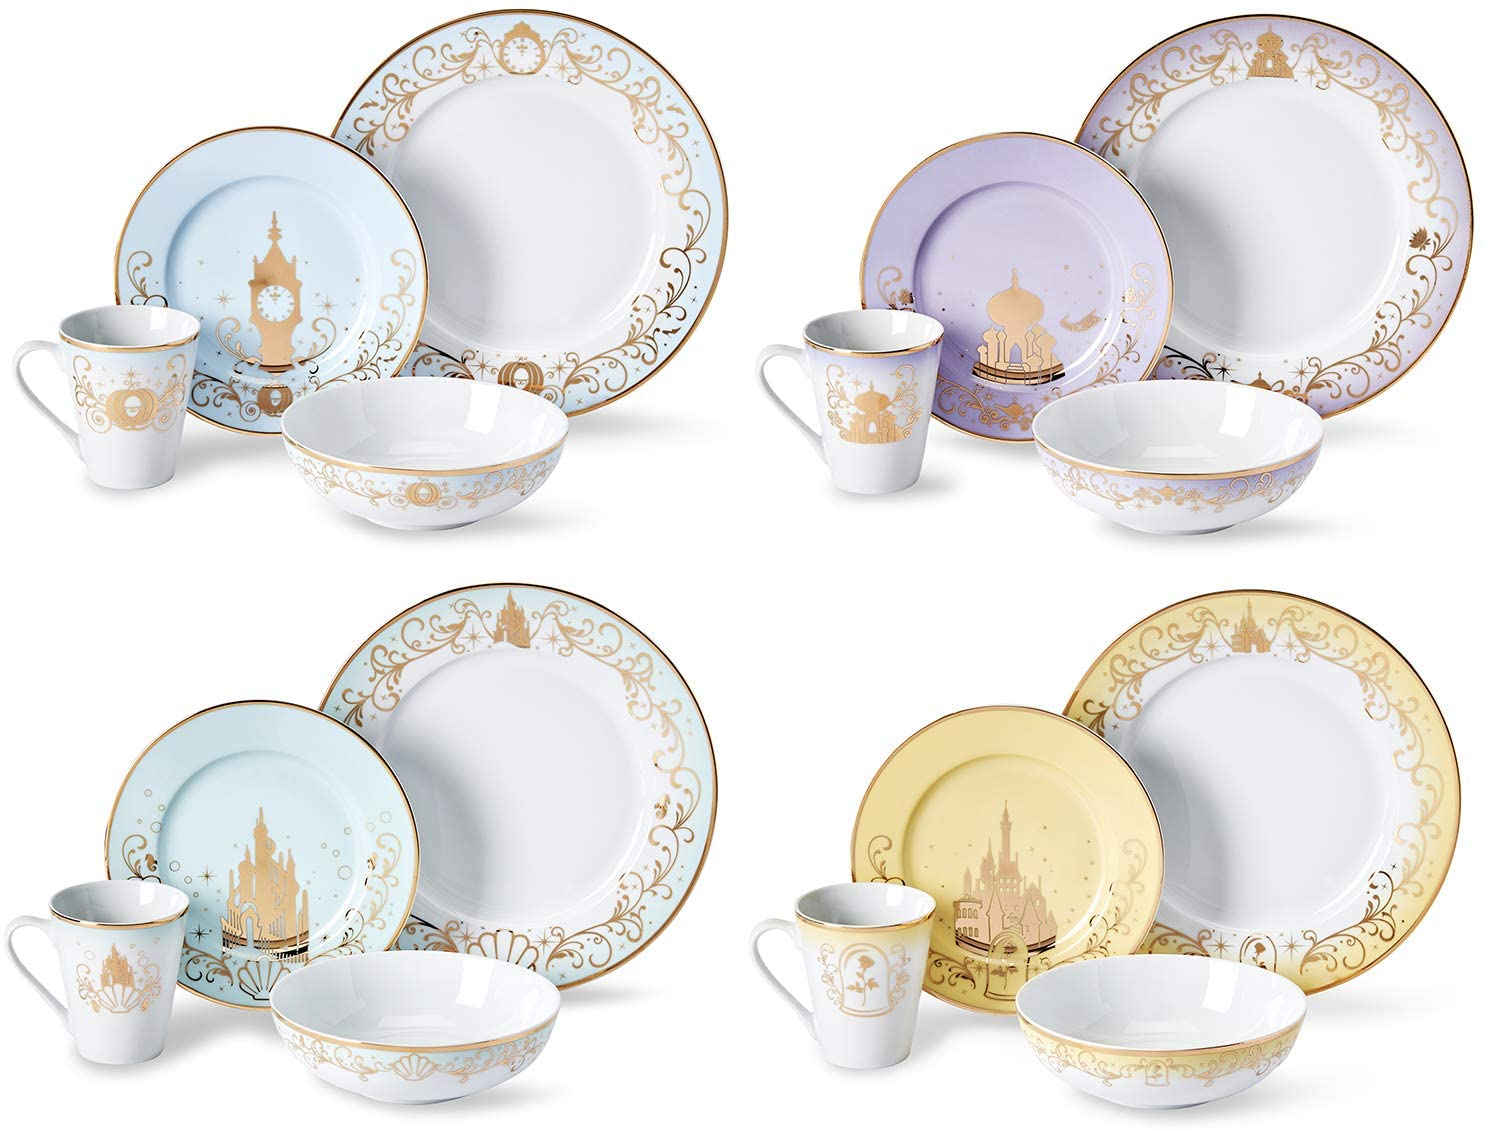 Disney Themed Dinnerware Set - 16 Ceramic Dishes, 4 Place Settings | Collection 1| Cinderella, Aladdin, Little Mermaid, & Beauty and the Beast Colorful Dinner & Dessert Plates, Bowl & Mug